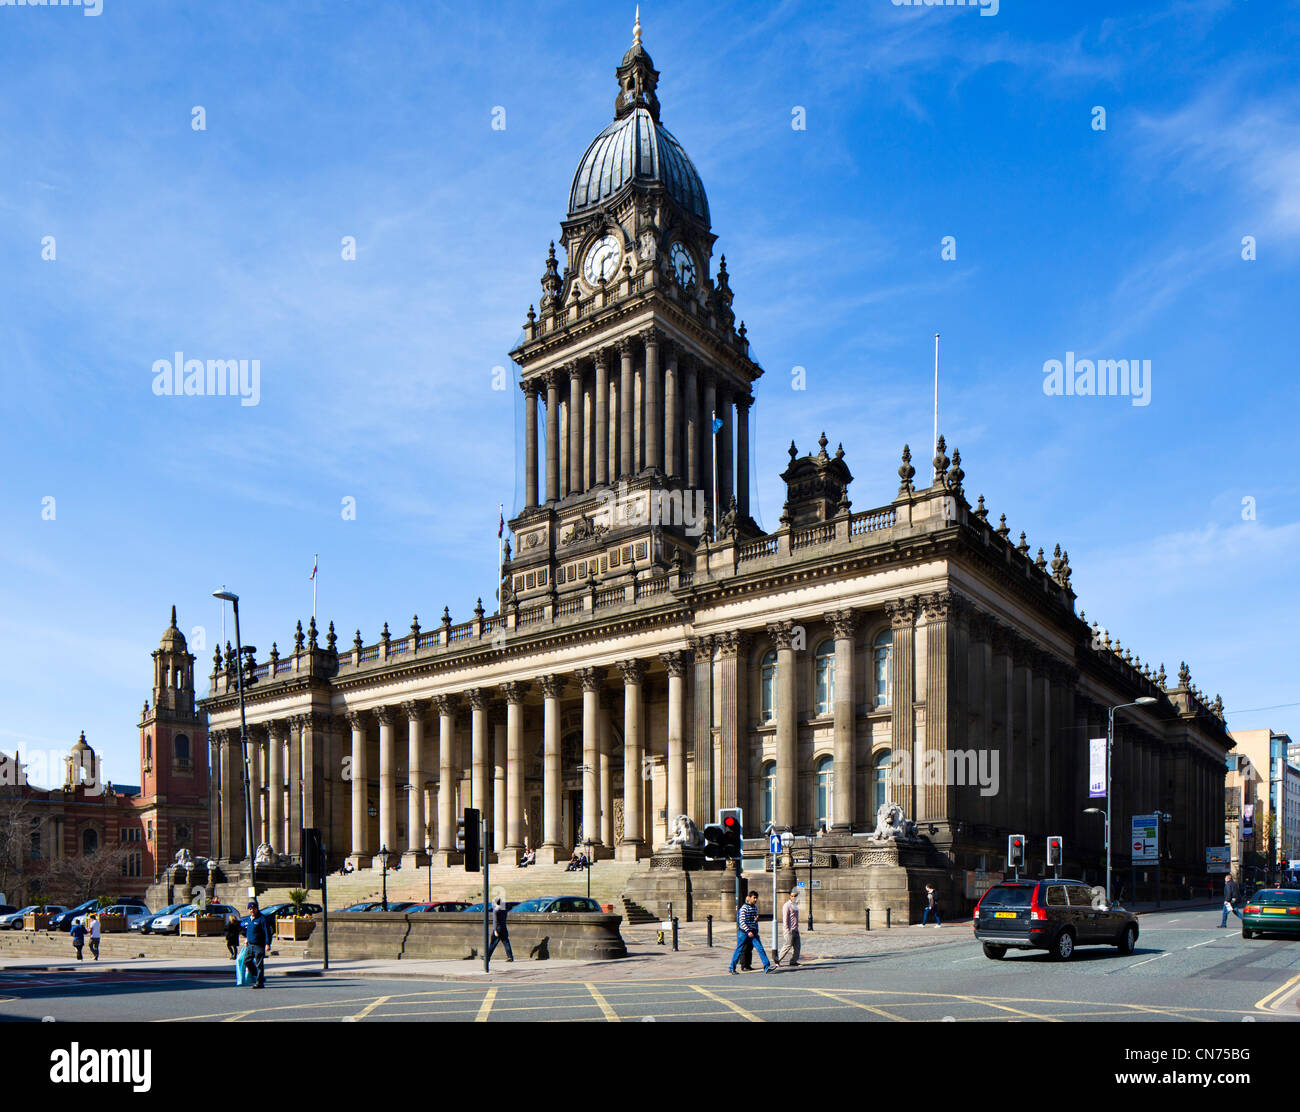 Leeds Town Hall designed by the local architect Cuthbert Broderick, Leeds, West Yorkshire, England - Stock Image